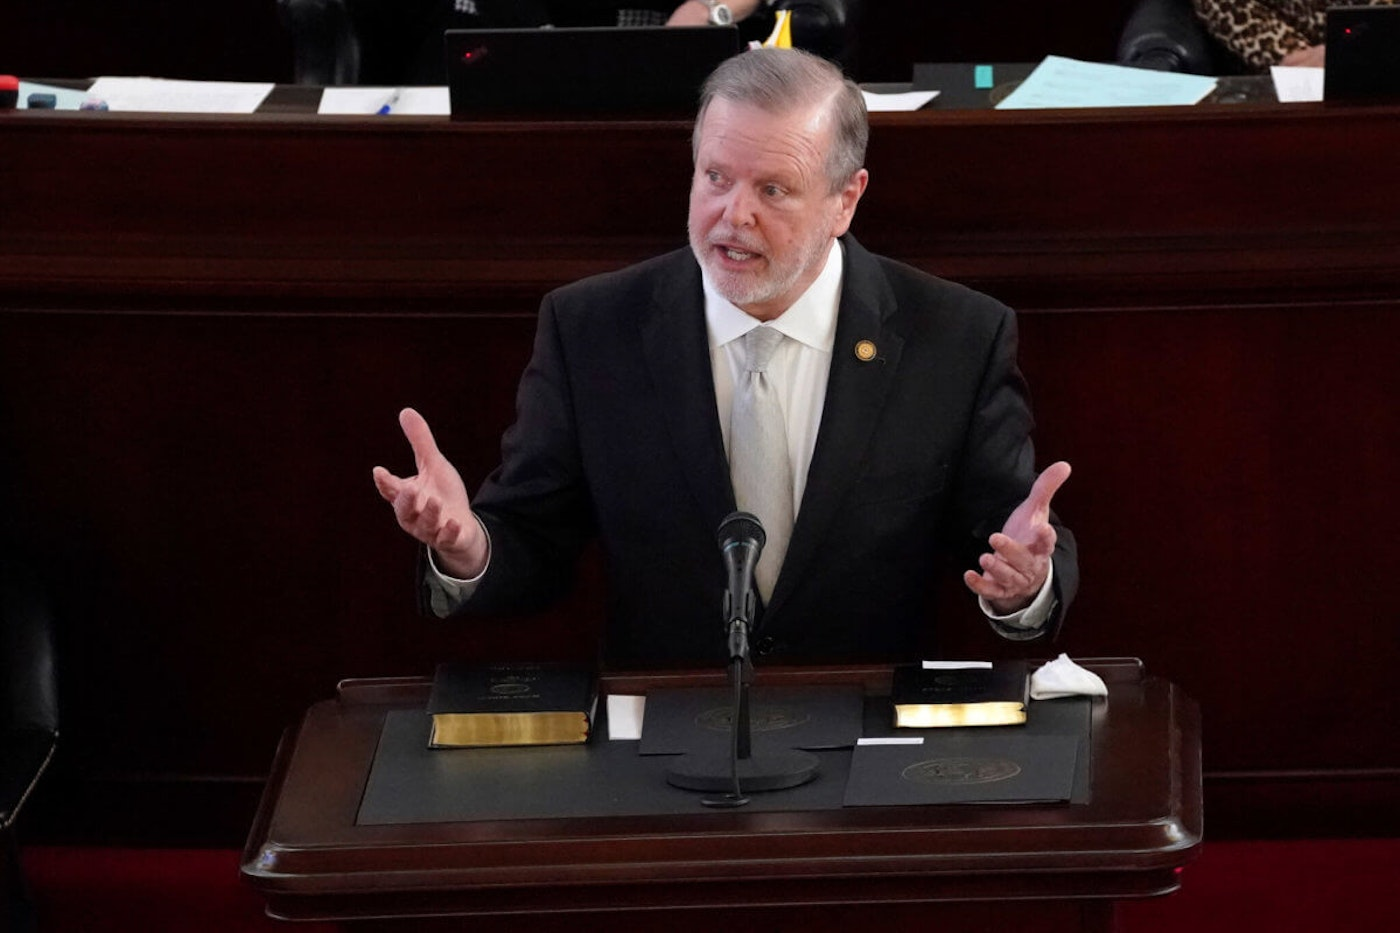 Senate President Pro Tempore Phil Berger, R-Rockingham, in January 2021. Berger's office has long opposed Medicaid expansion in North Carolina. (AP Photo/Gerry Broome)